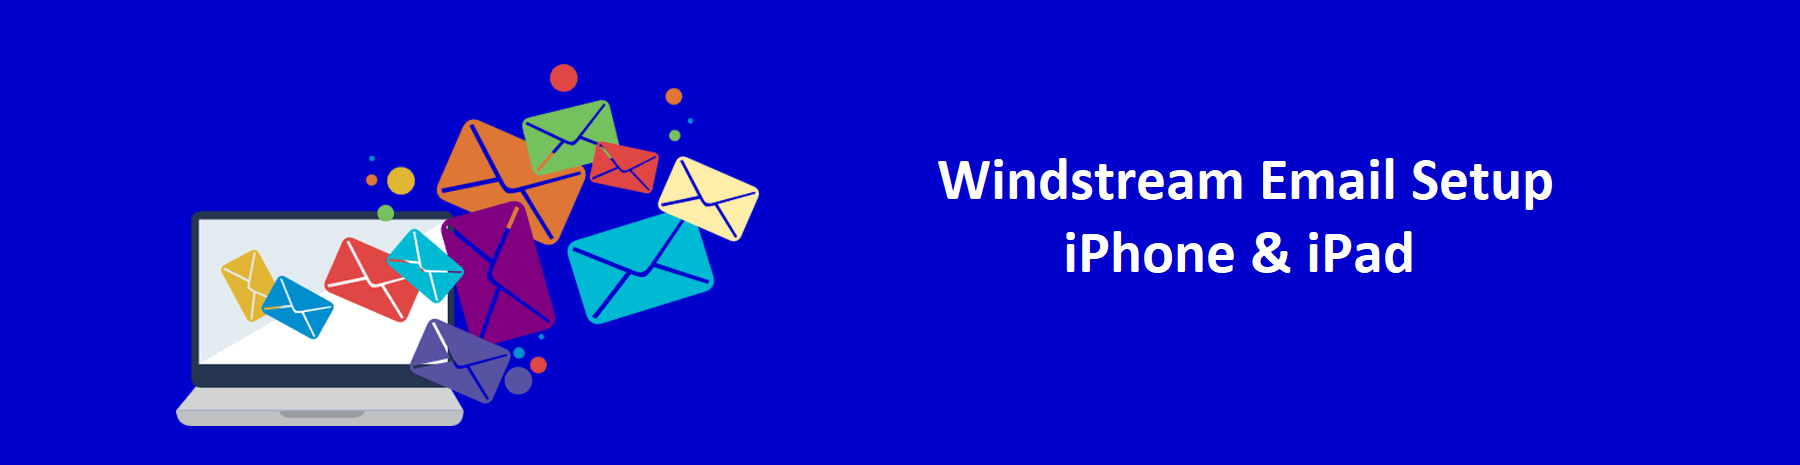 Windstream Email Setup on iPhone & iPad